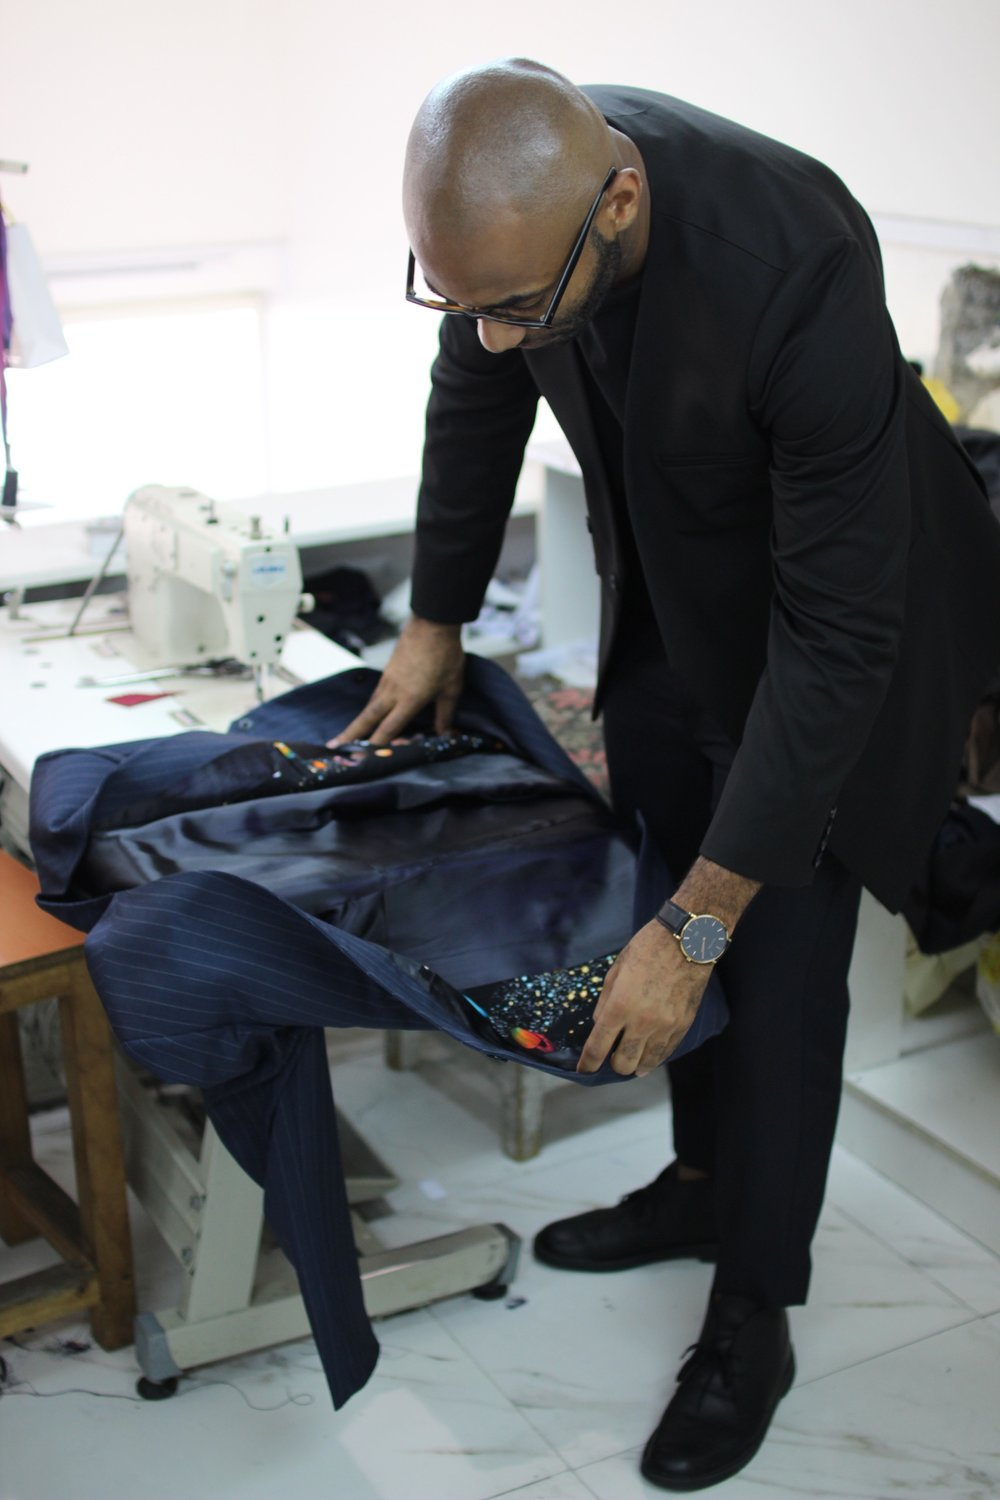 Anthony Caton in studio, viewing the celestial pattern of a jacket lining